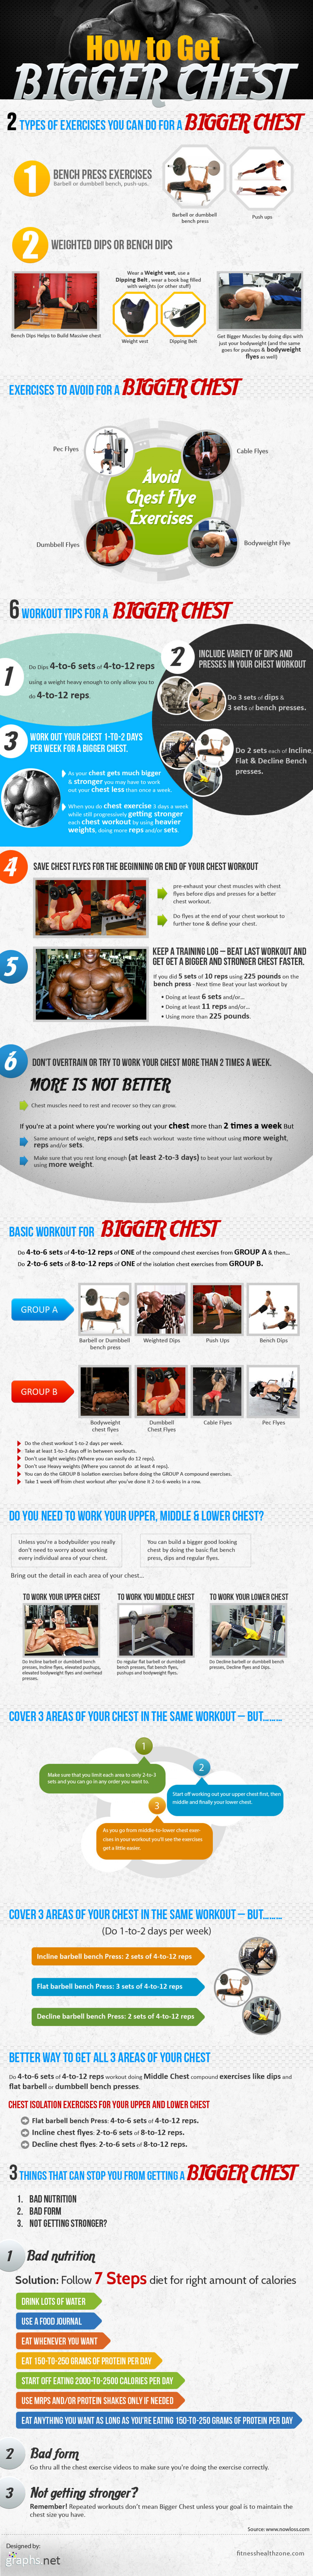 How to Get Bigger Chest	 Infographic